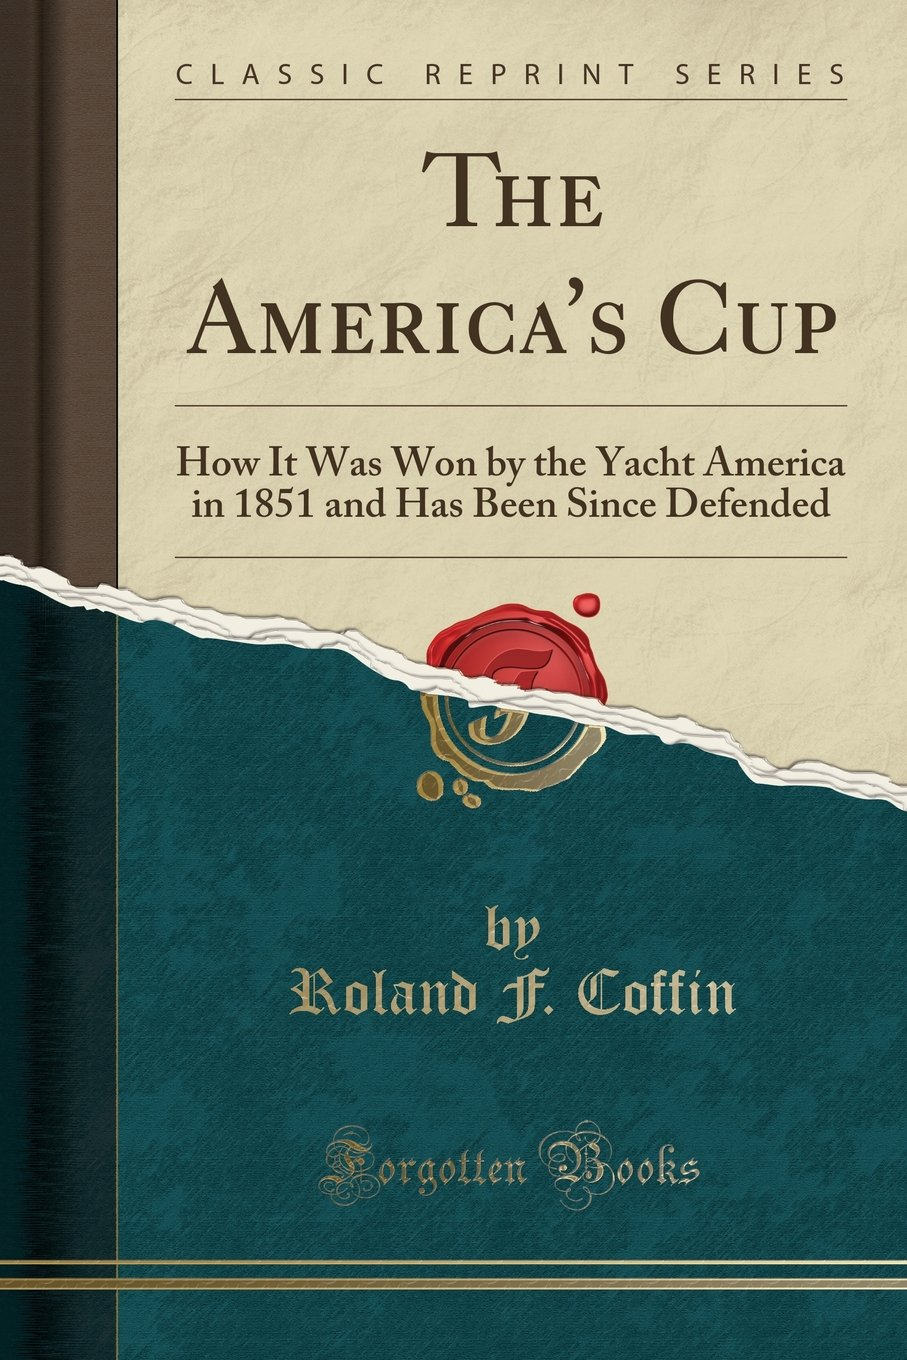 Download The America's Cup: How It Was Won by the Yacht America in 1851 and Has Been Since Defended (Classic Reprint) ebook